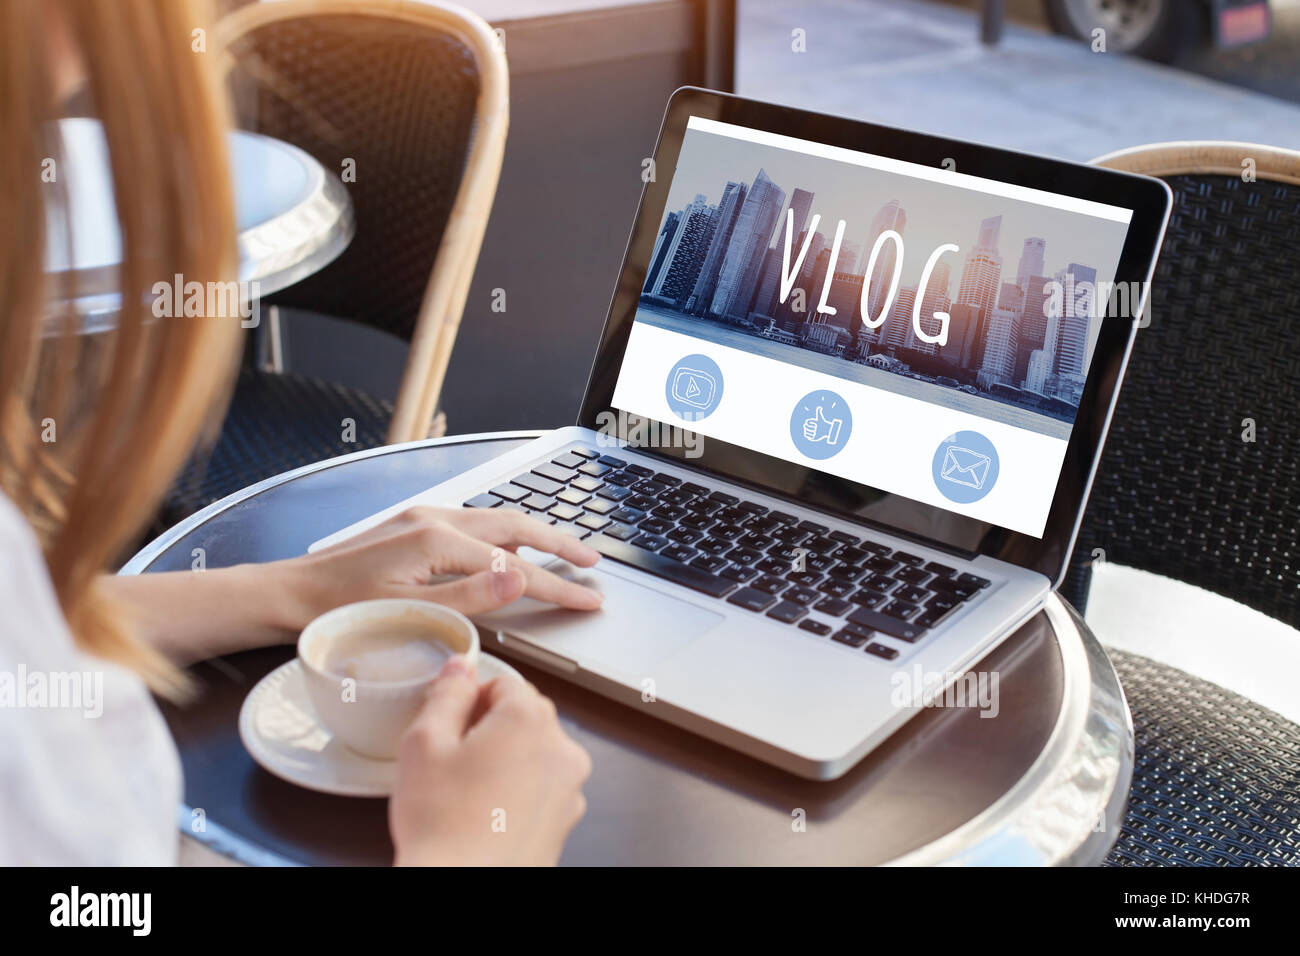 video blog, woman reading vlog online on computer - Stock Image